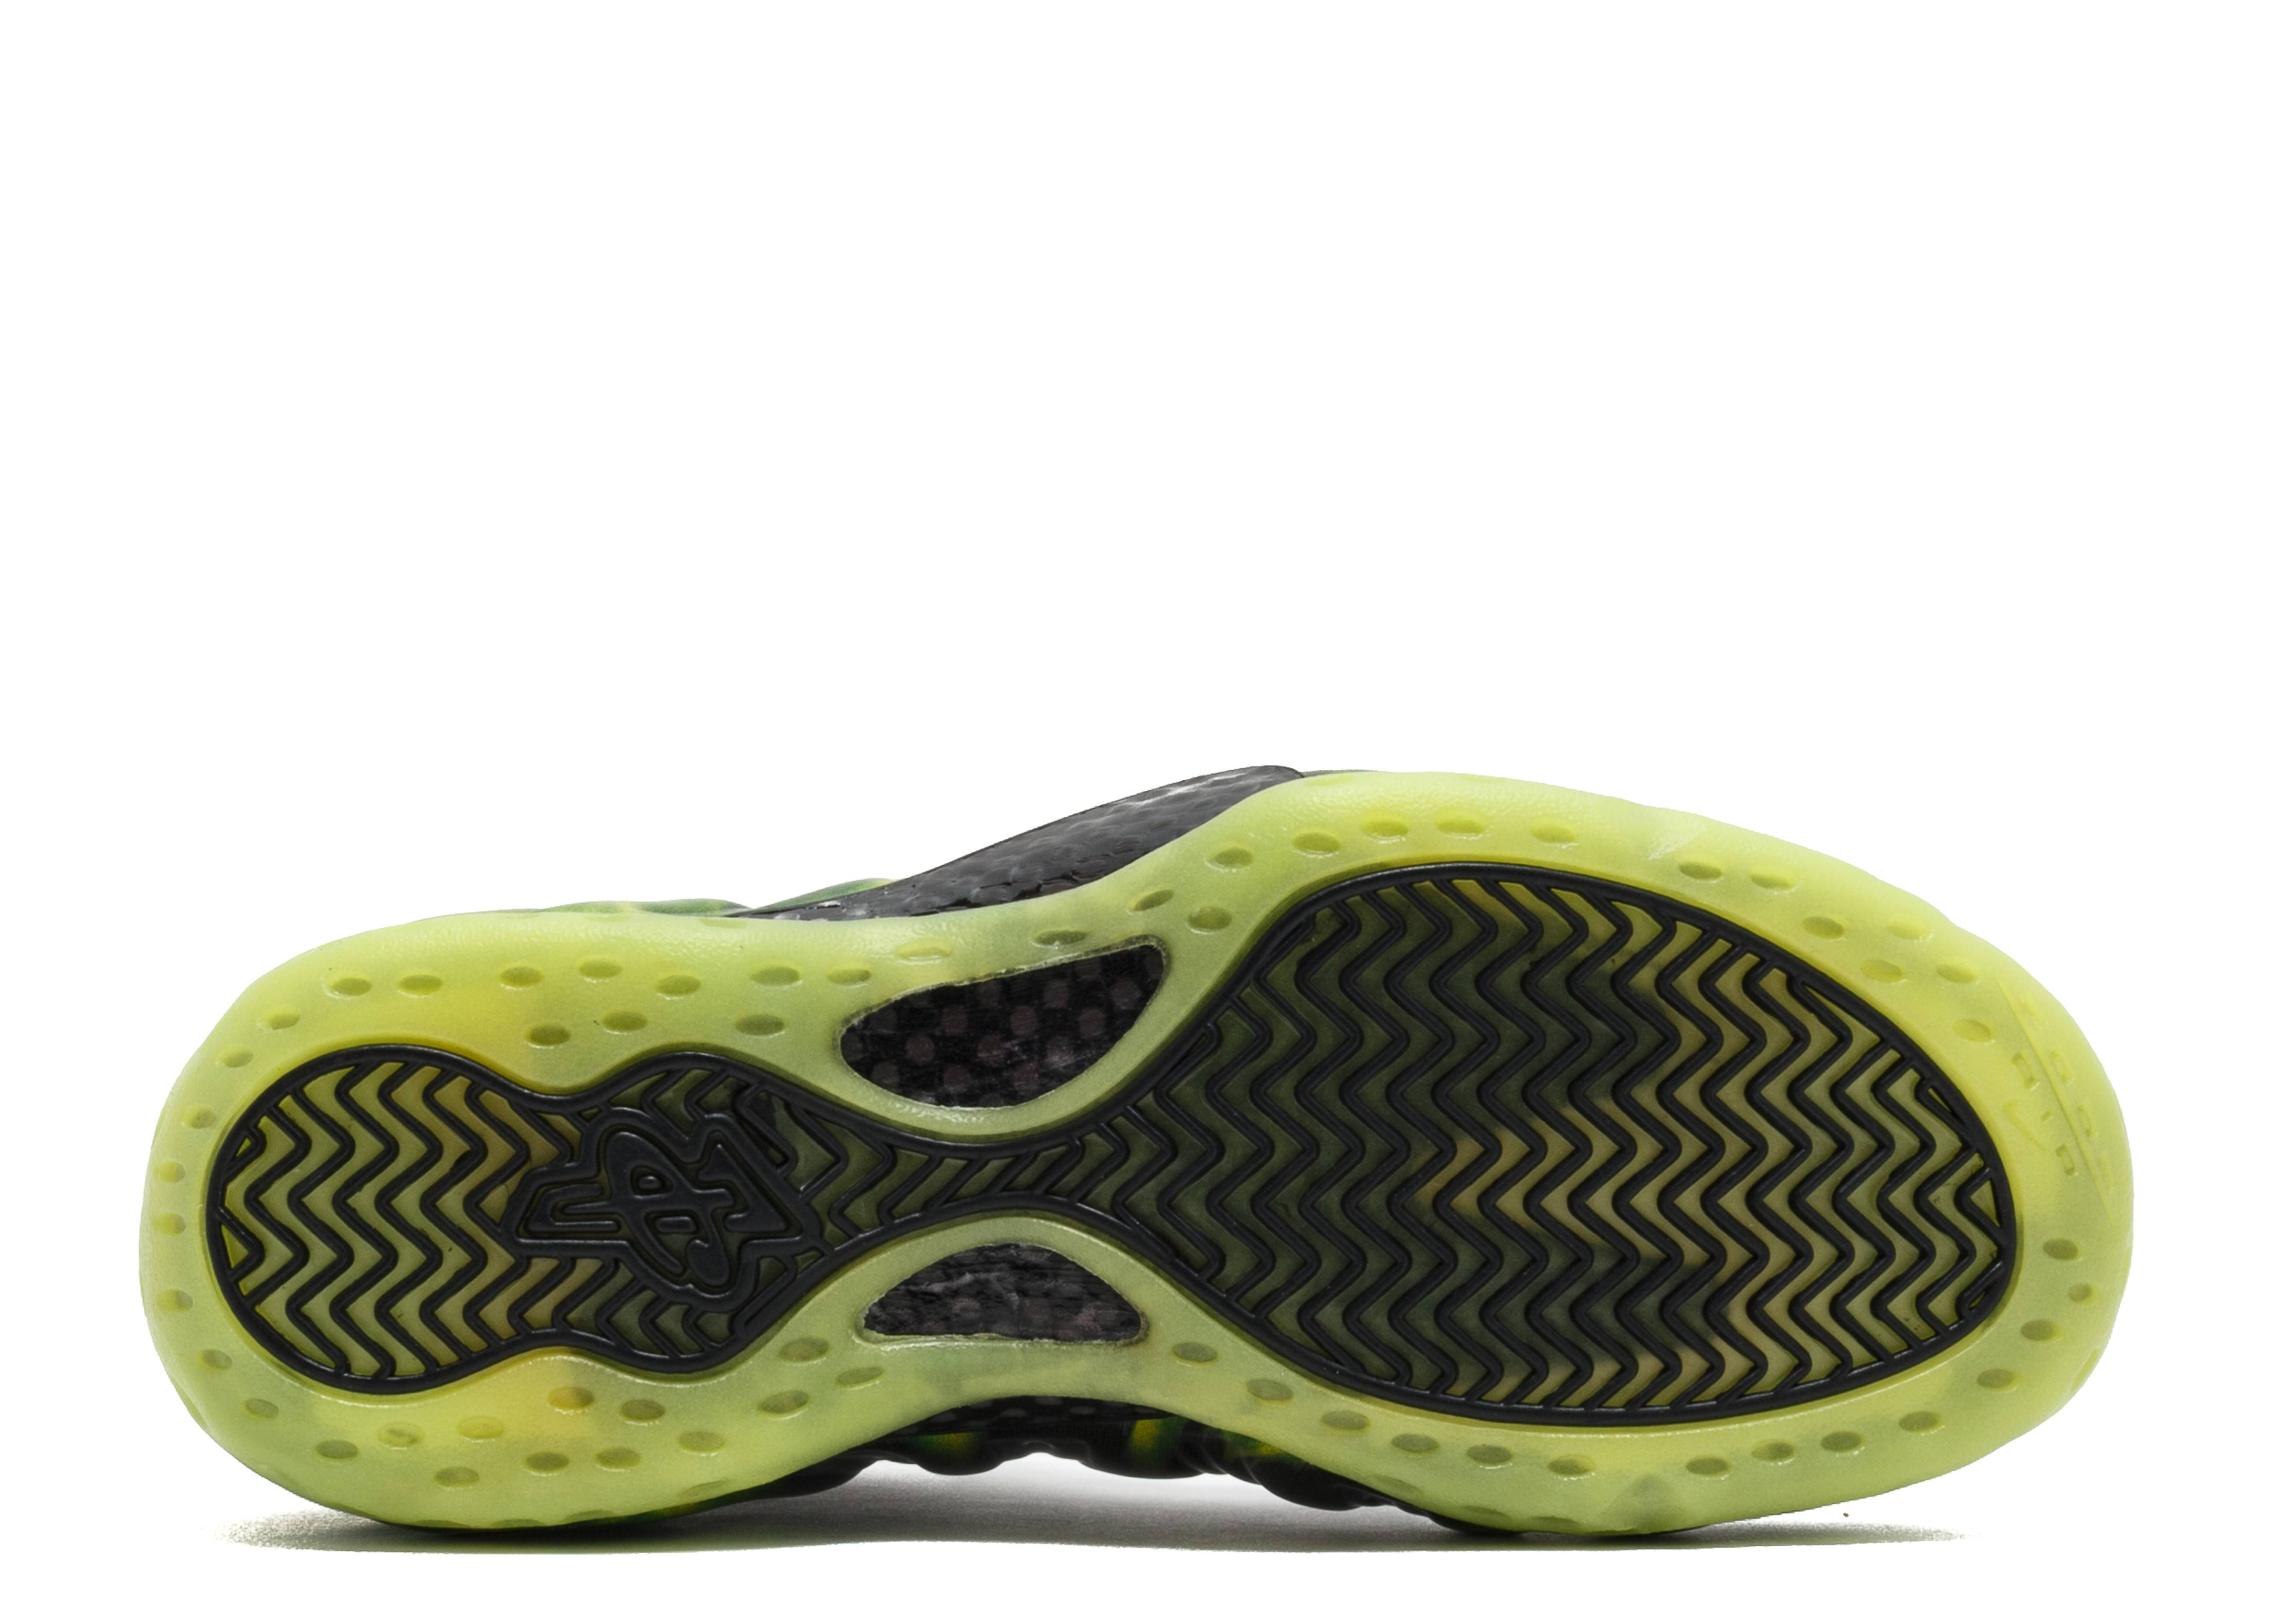 promo code 270cd 5f277 nike. air foamposite one paranorman